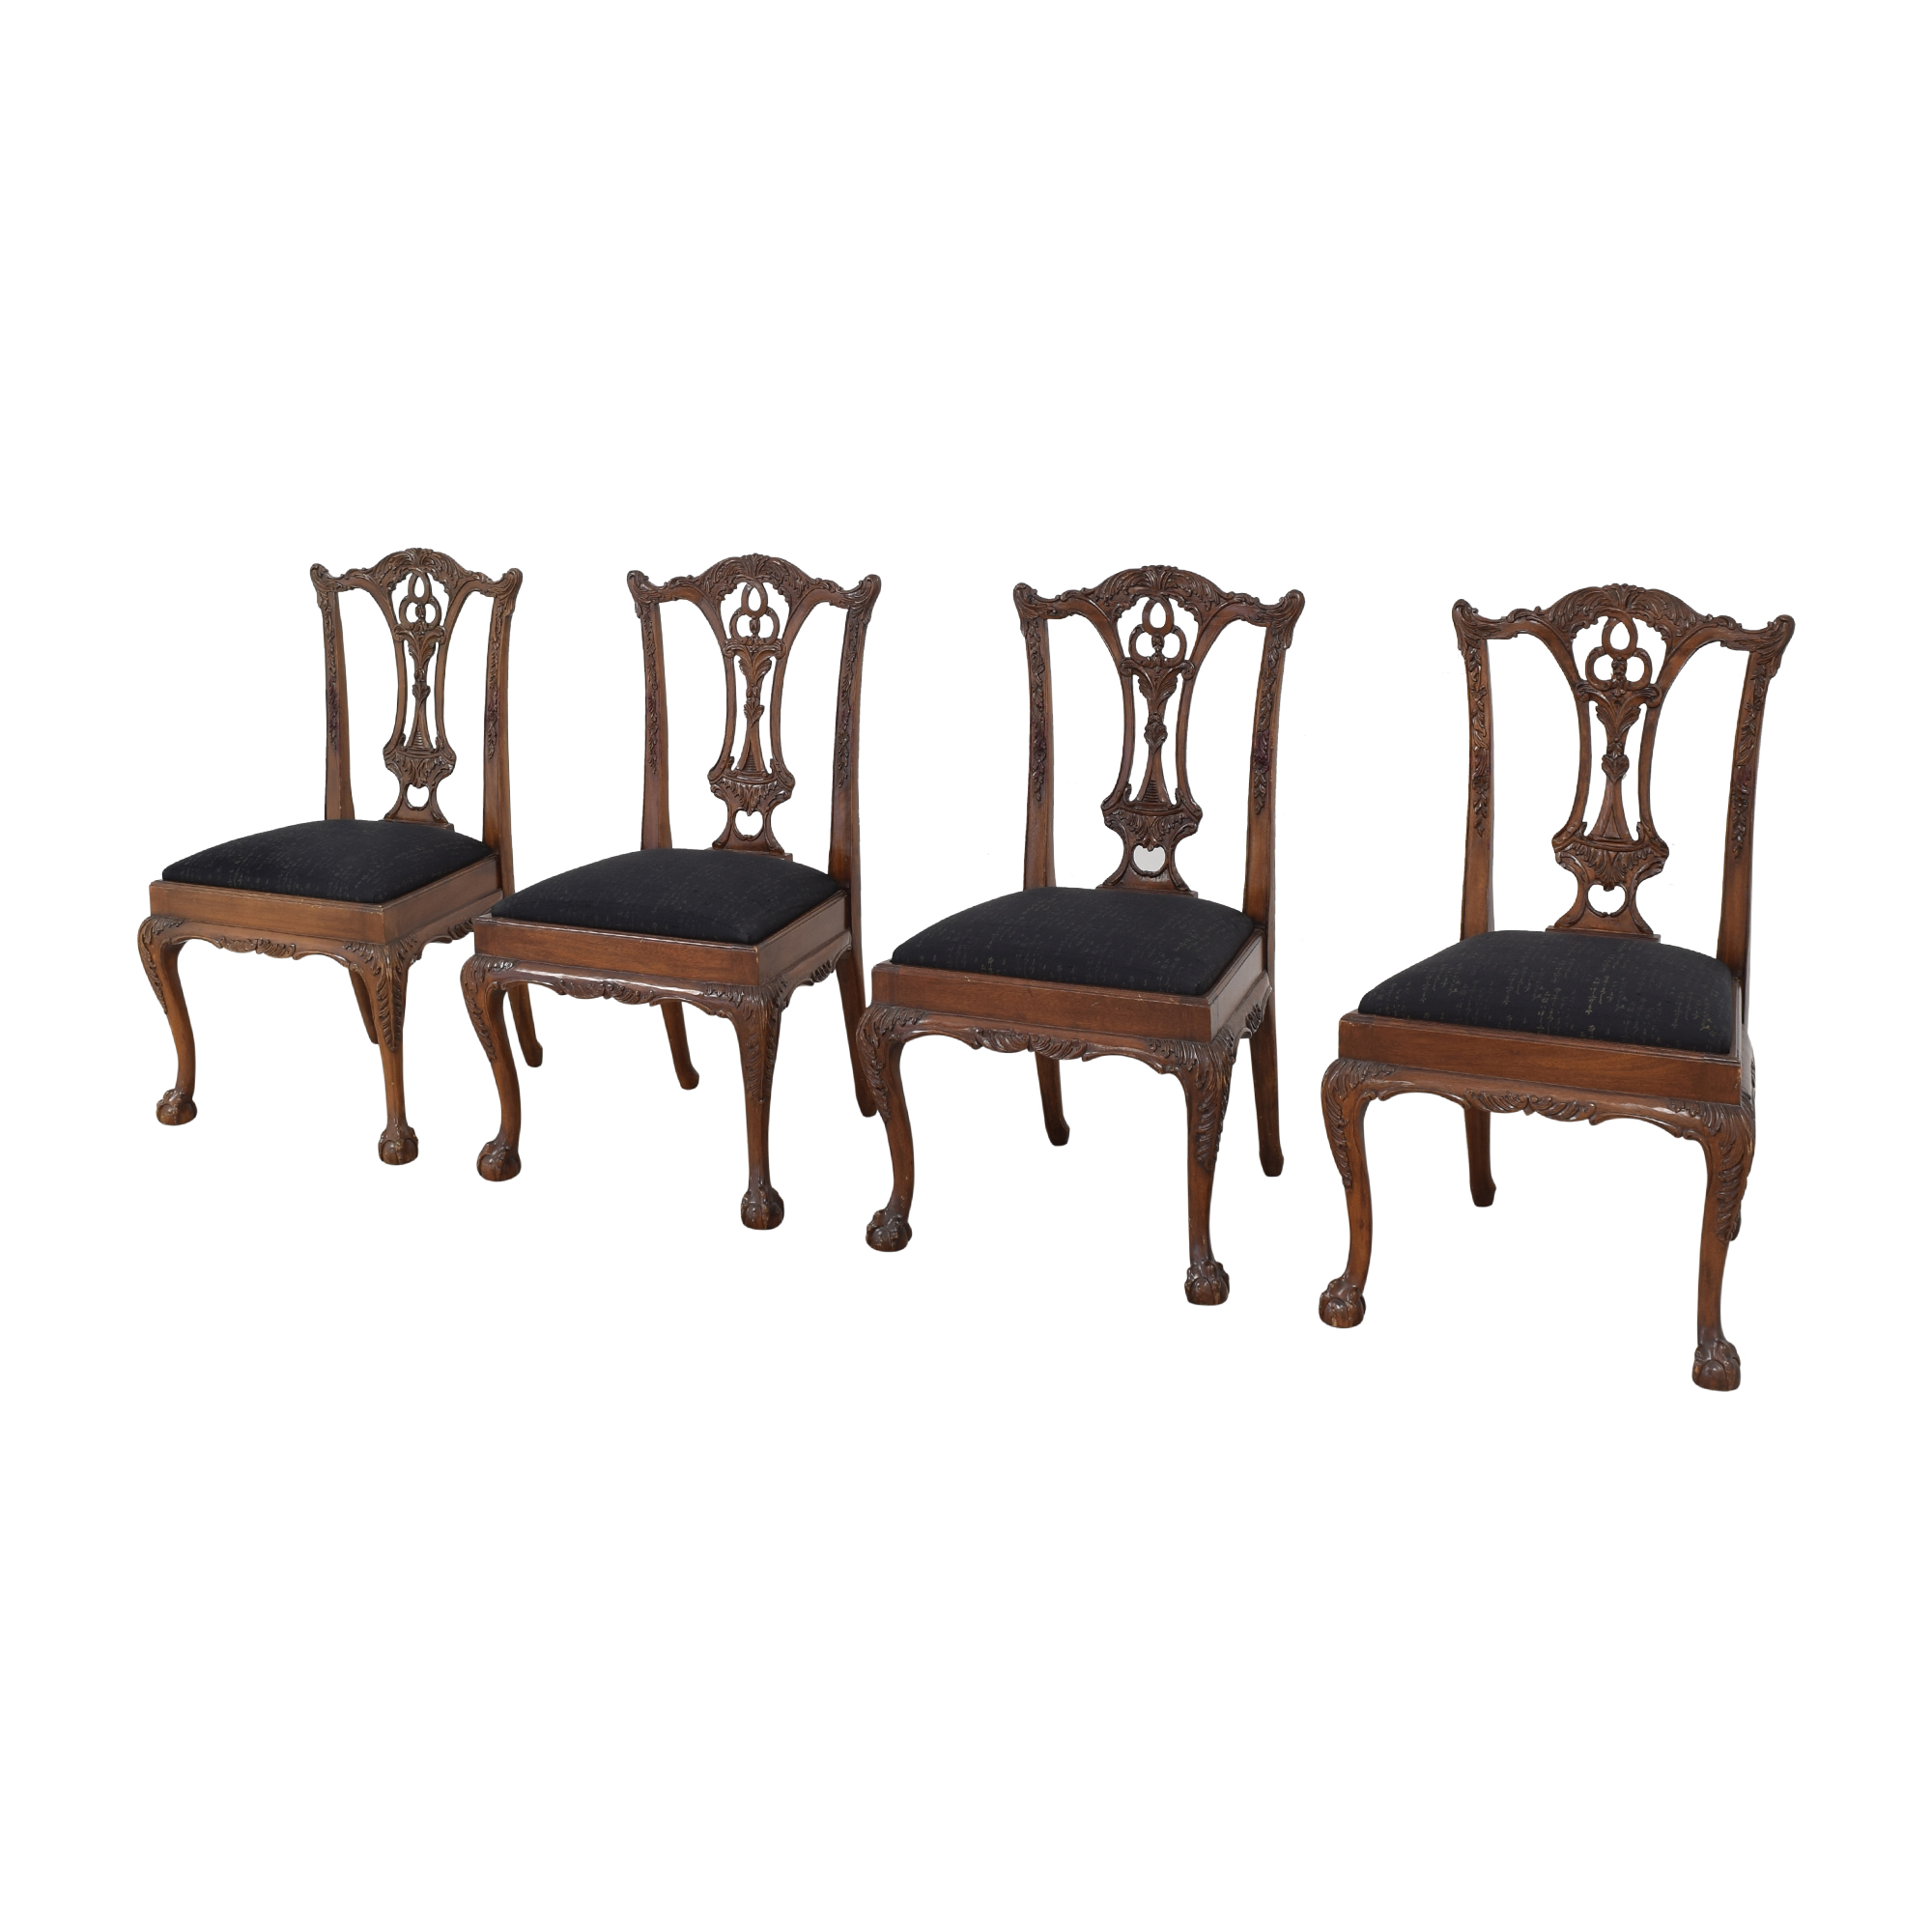 Maitland-Smith Maitland-Smith Carved Chippendale Style Dining Chairs dimensions